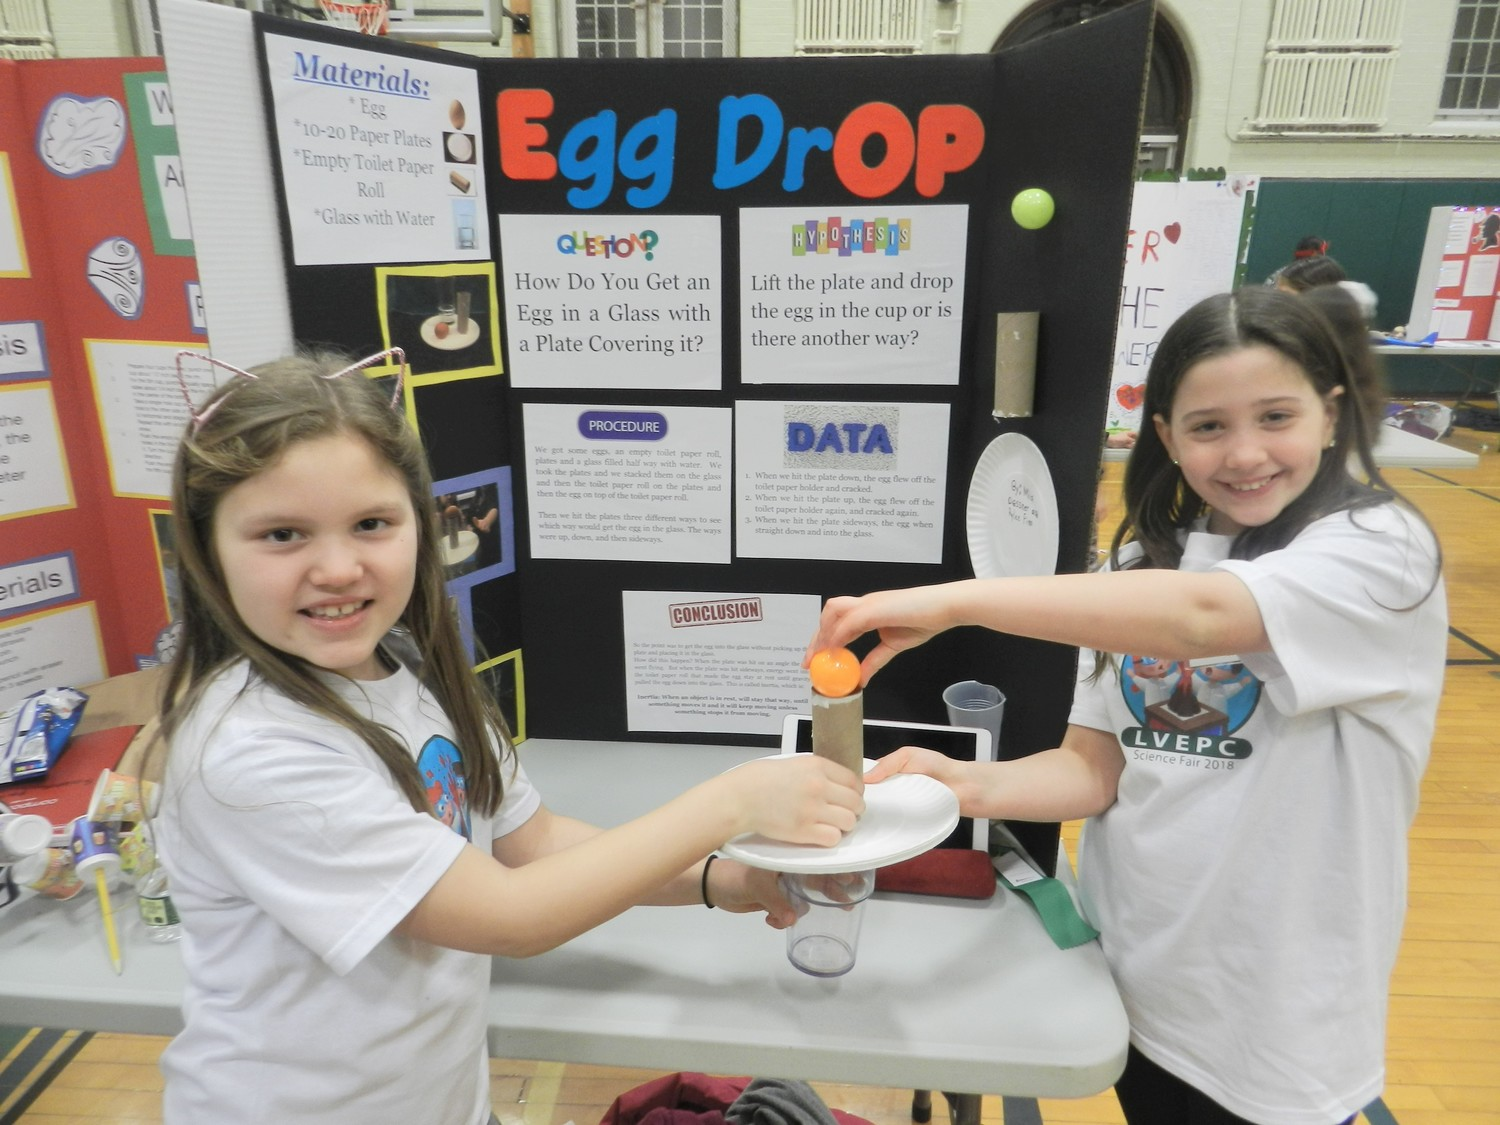 Rylee Finn, left, and Mia Dessner's egg drop project tested the laws of inertia.